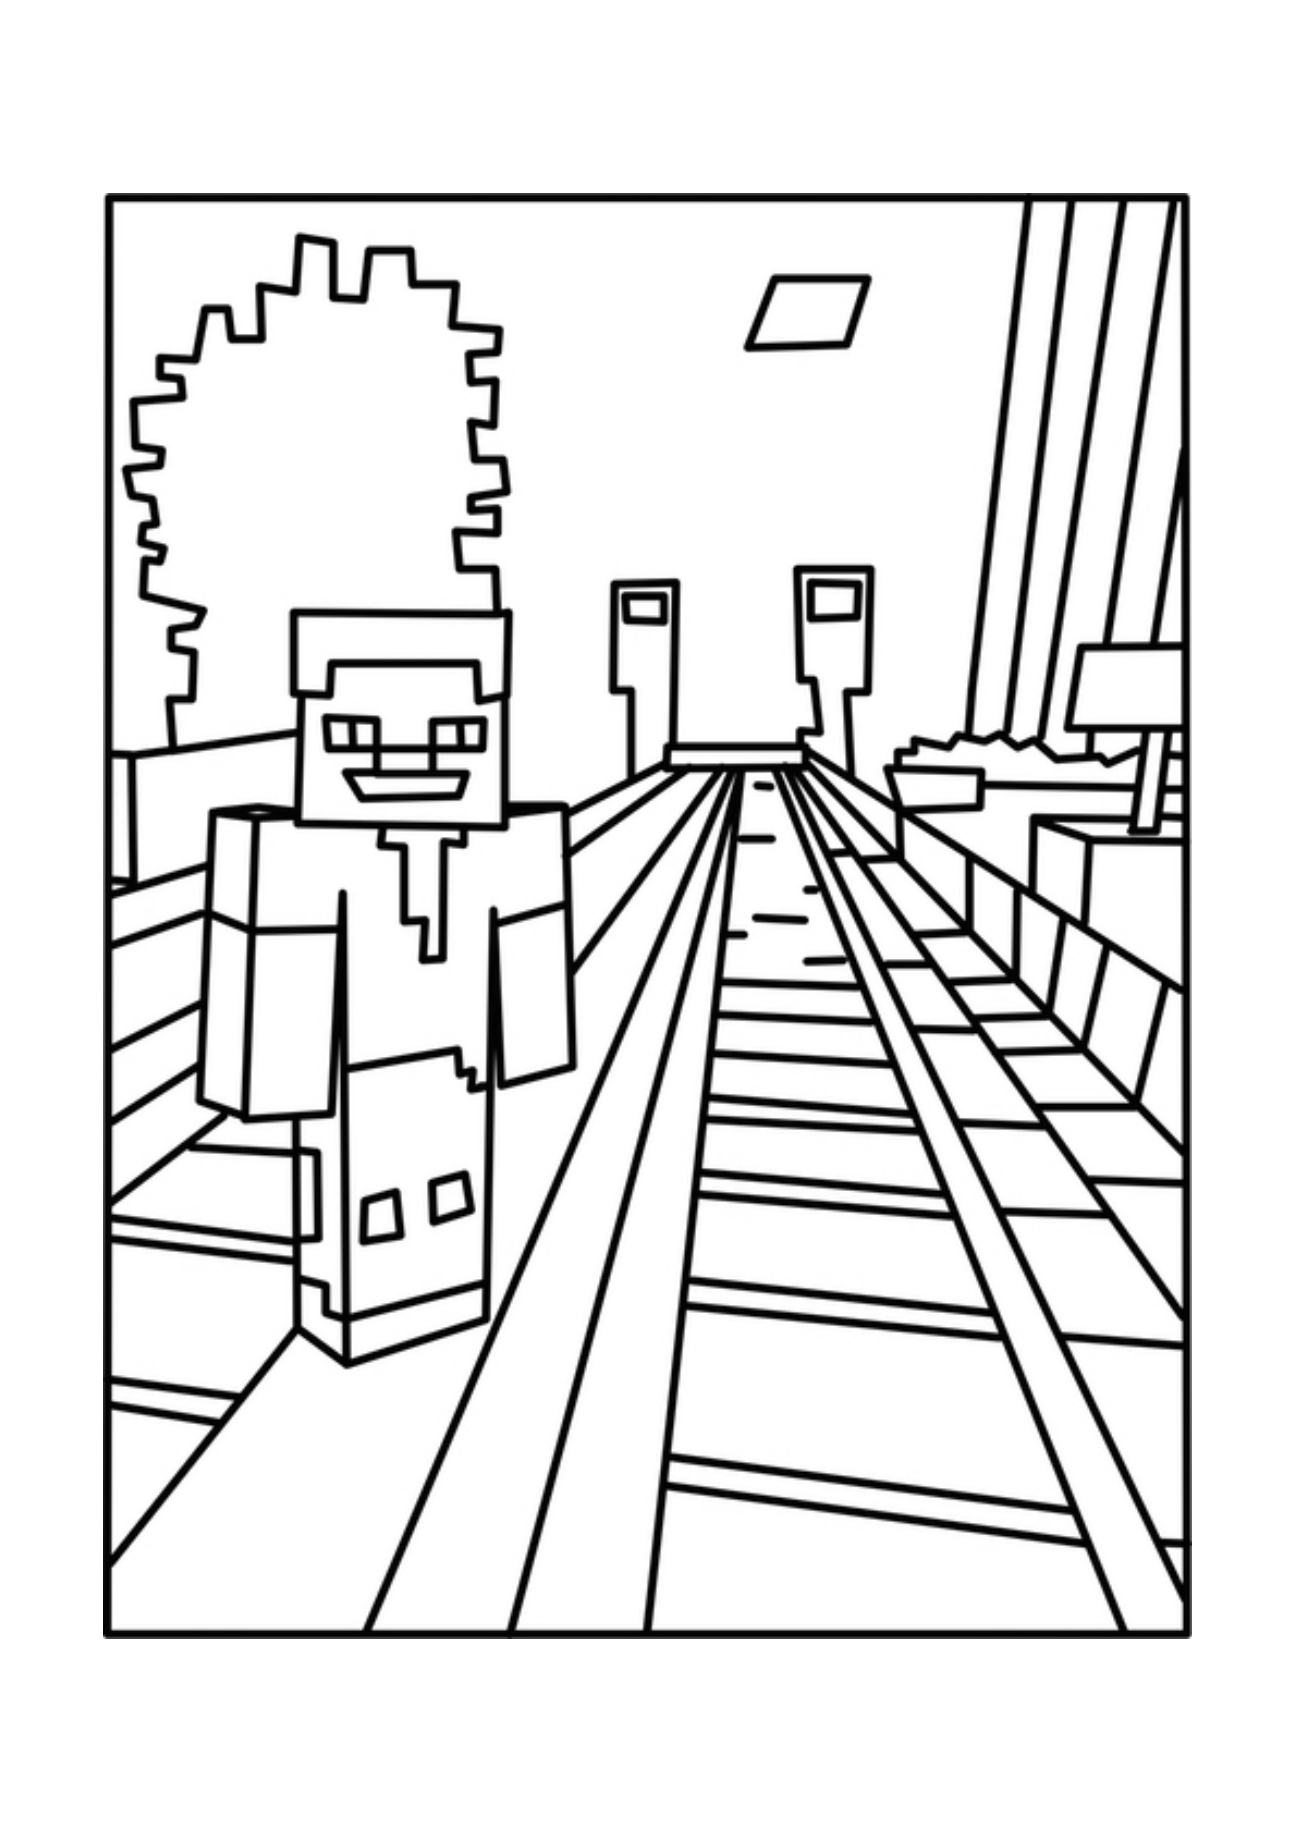 minecraft coloring sheet minecraft coloring pages animals coloring home sheet minecraft coloring